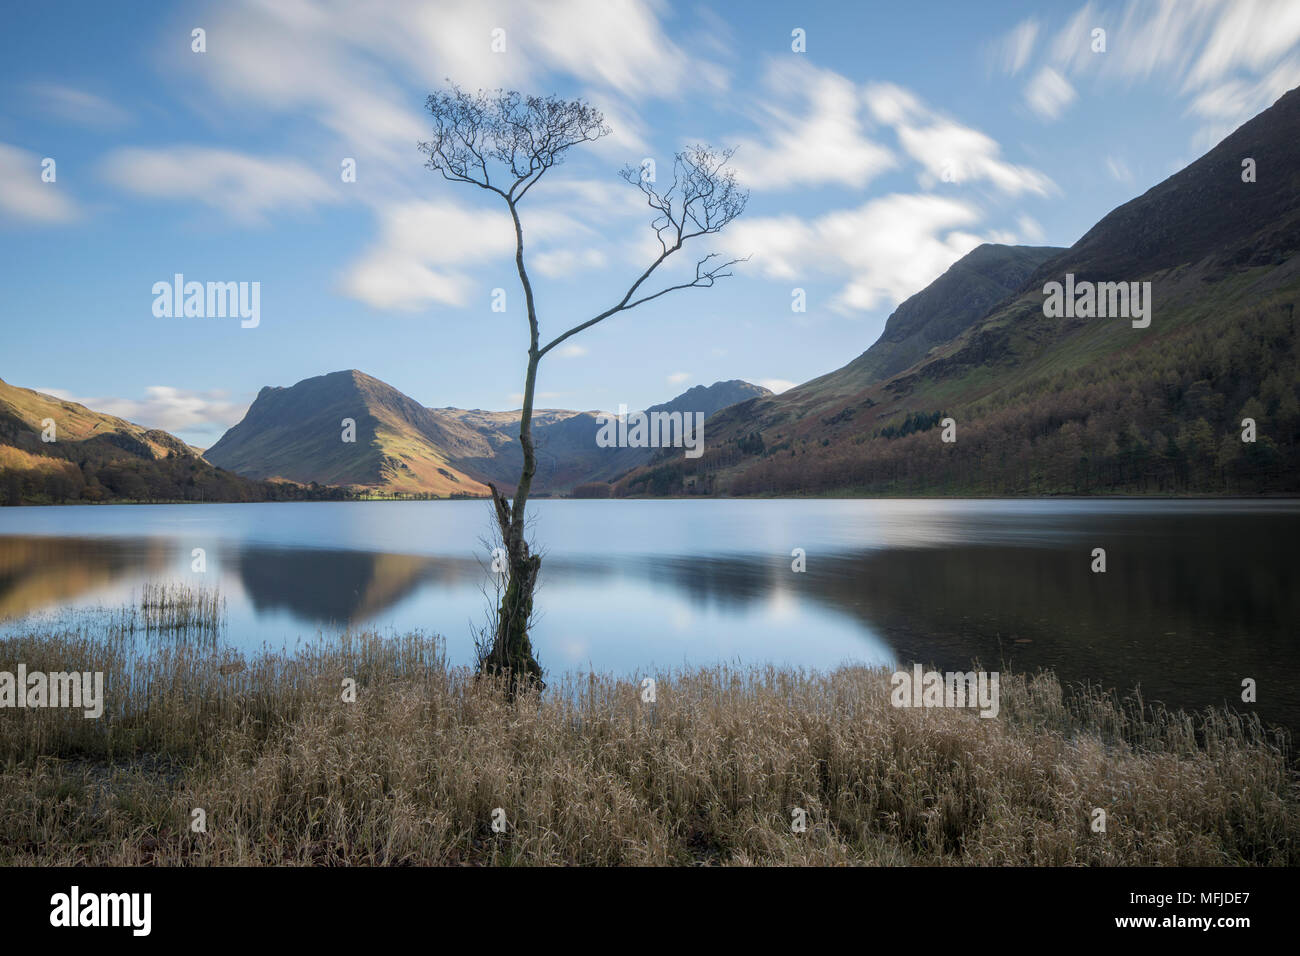 View over Buttermere to Fleetwith Pike in autumn, Lake District National Park, UNESCO World Heritage Site, Cumbria, England, United Kingdom, Europe - Stock Image